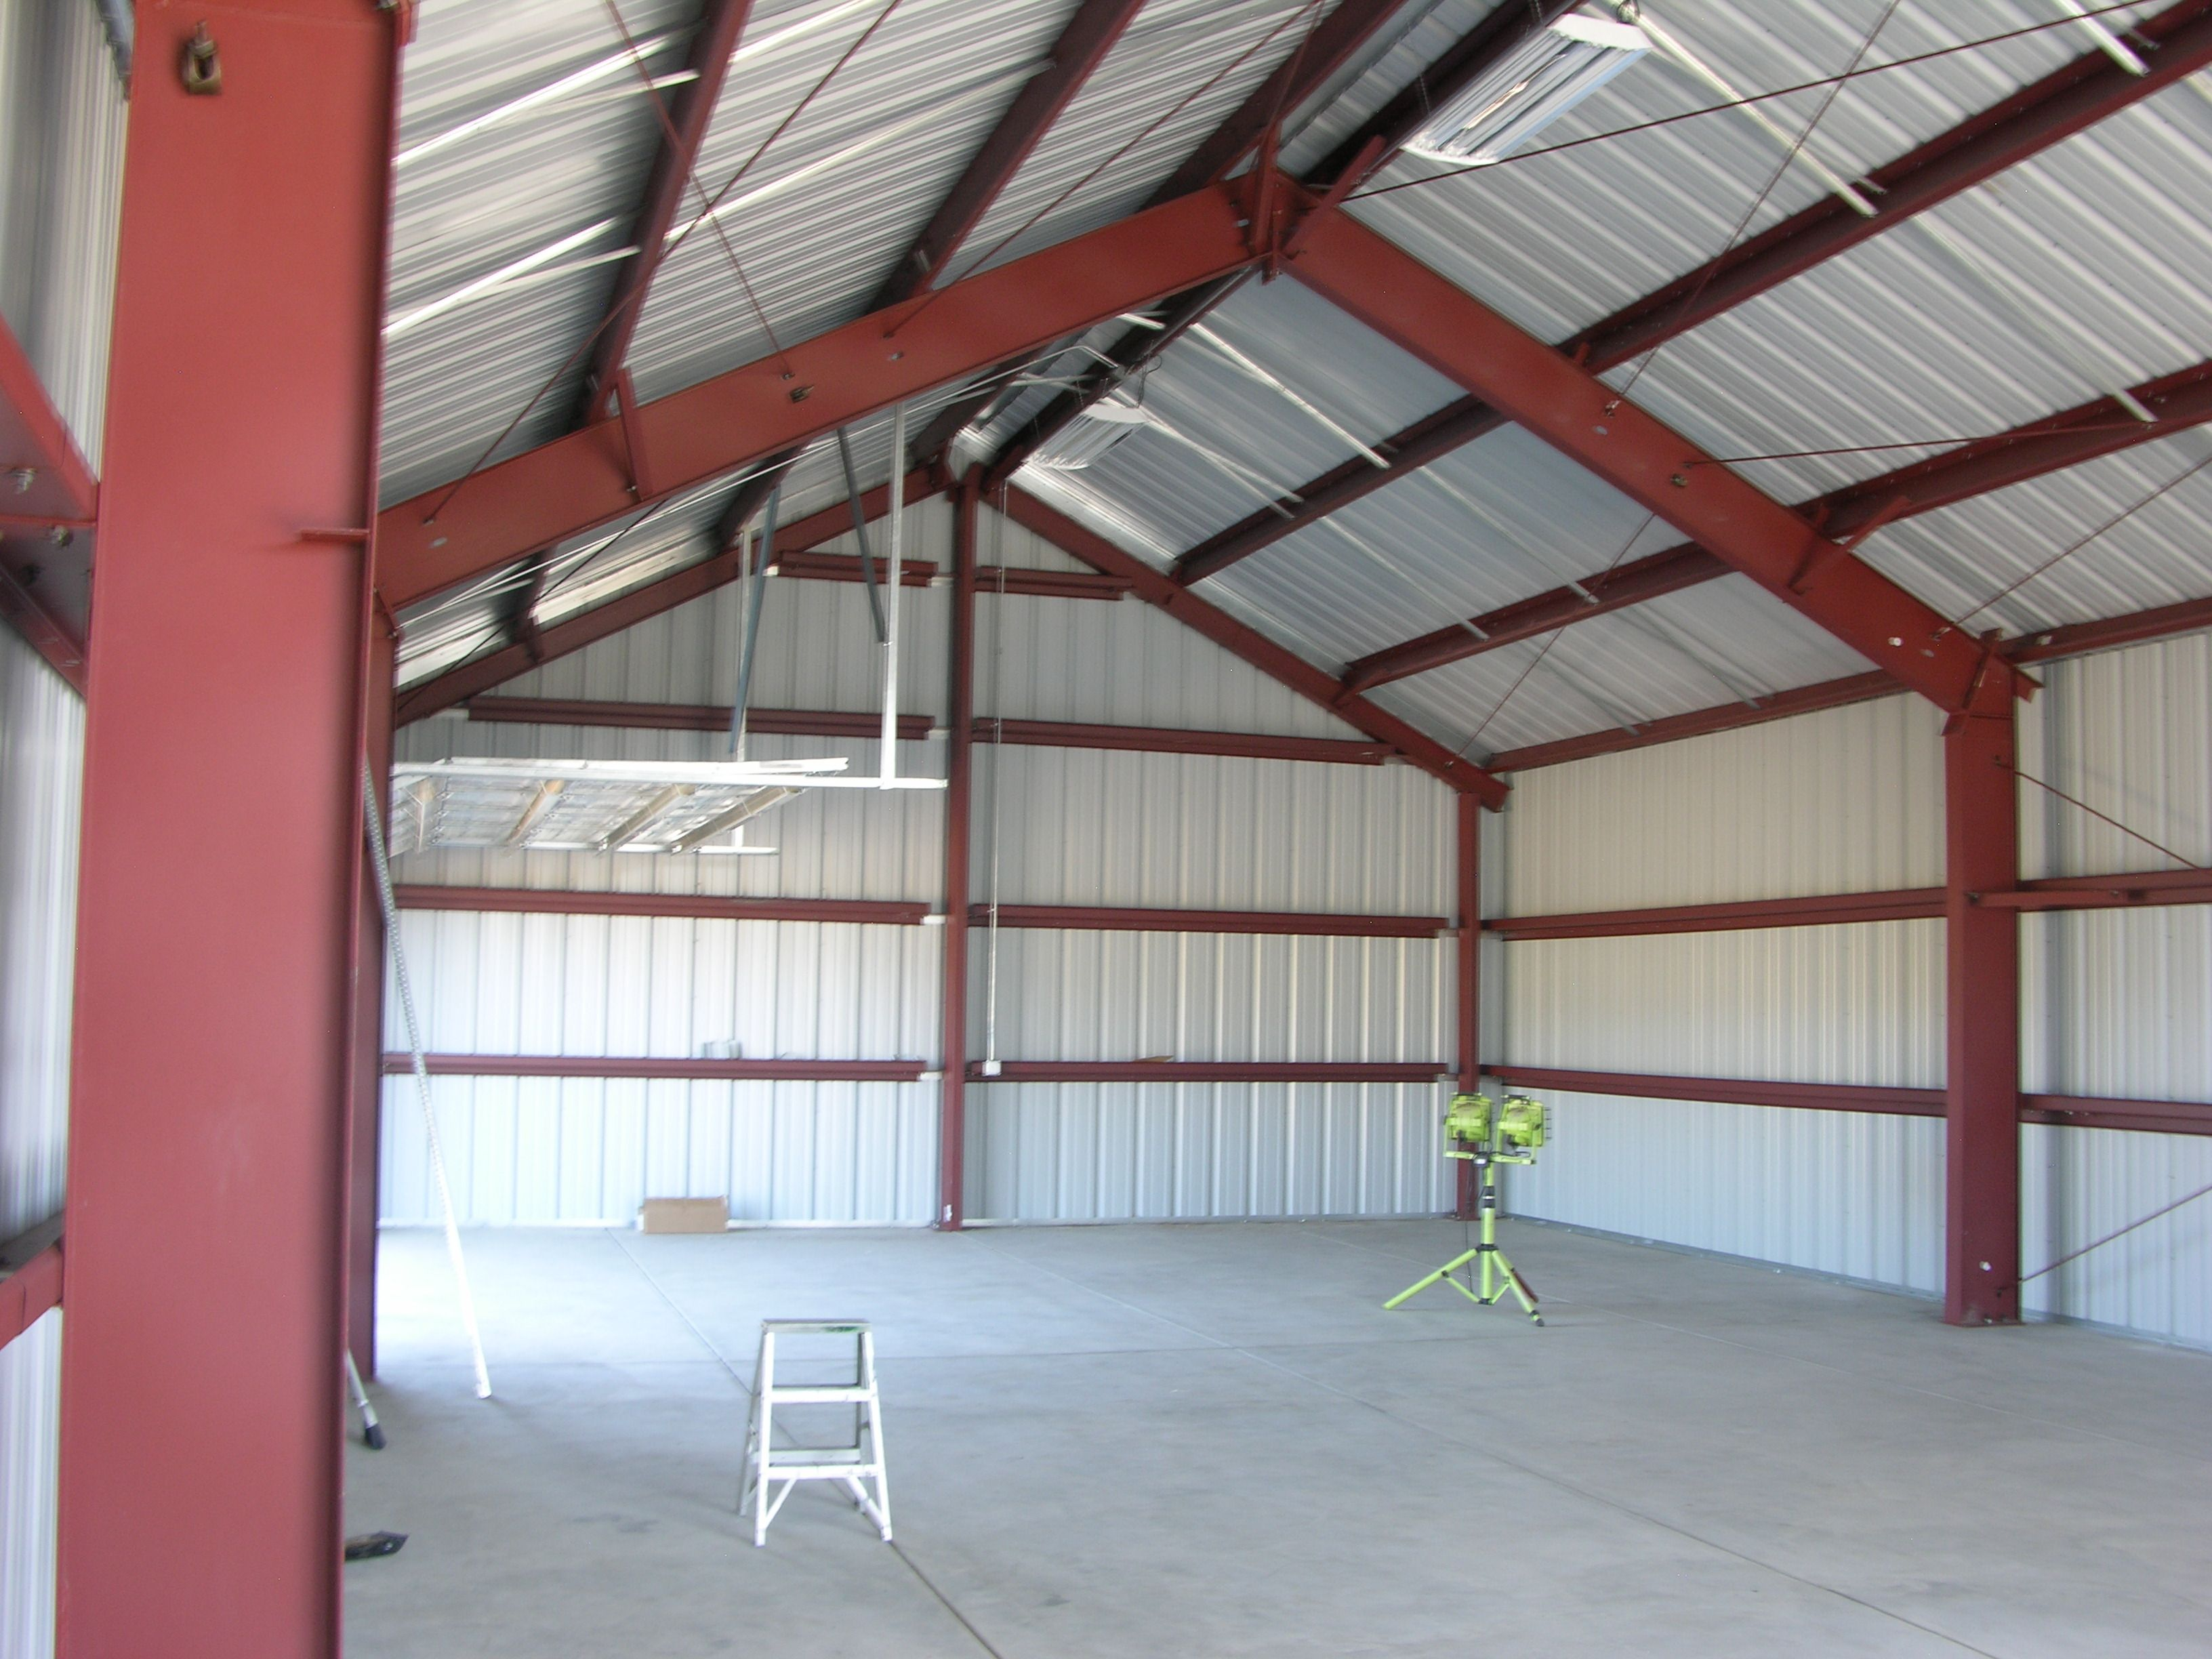 Garage Kits Metal Building Outlet Offers Top Quality Steel Building Garages For Commercial Buildi Metal Building Homes Cost Metal Shop Building Metal Buildings